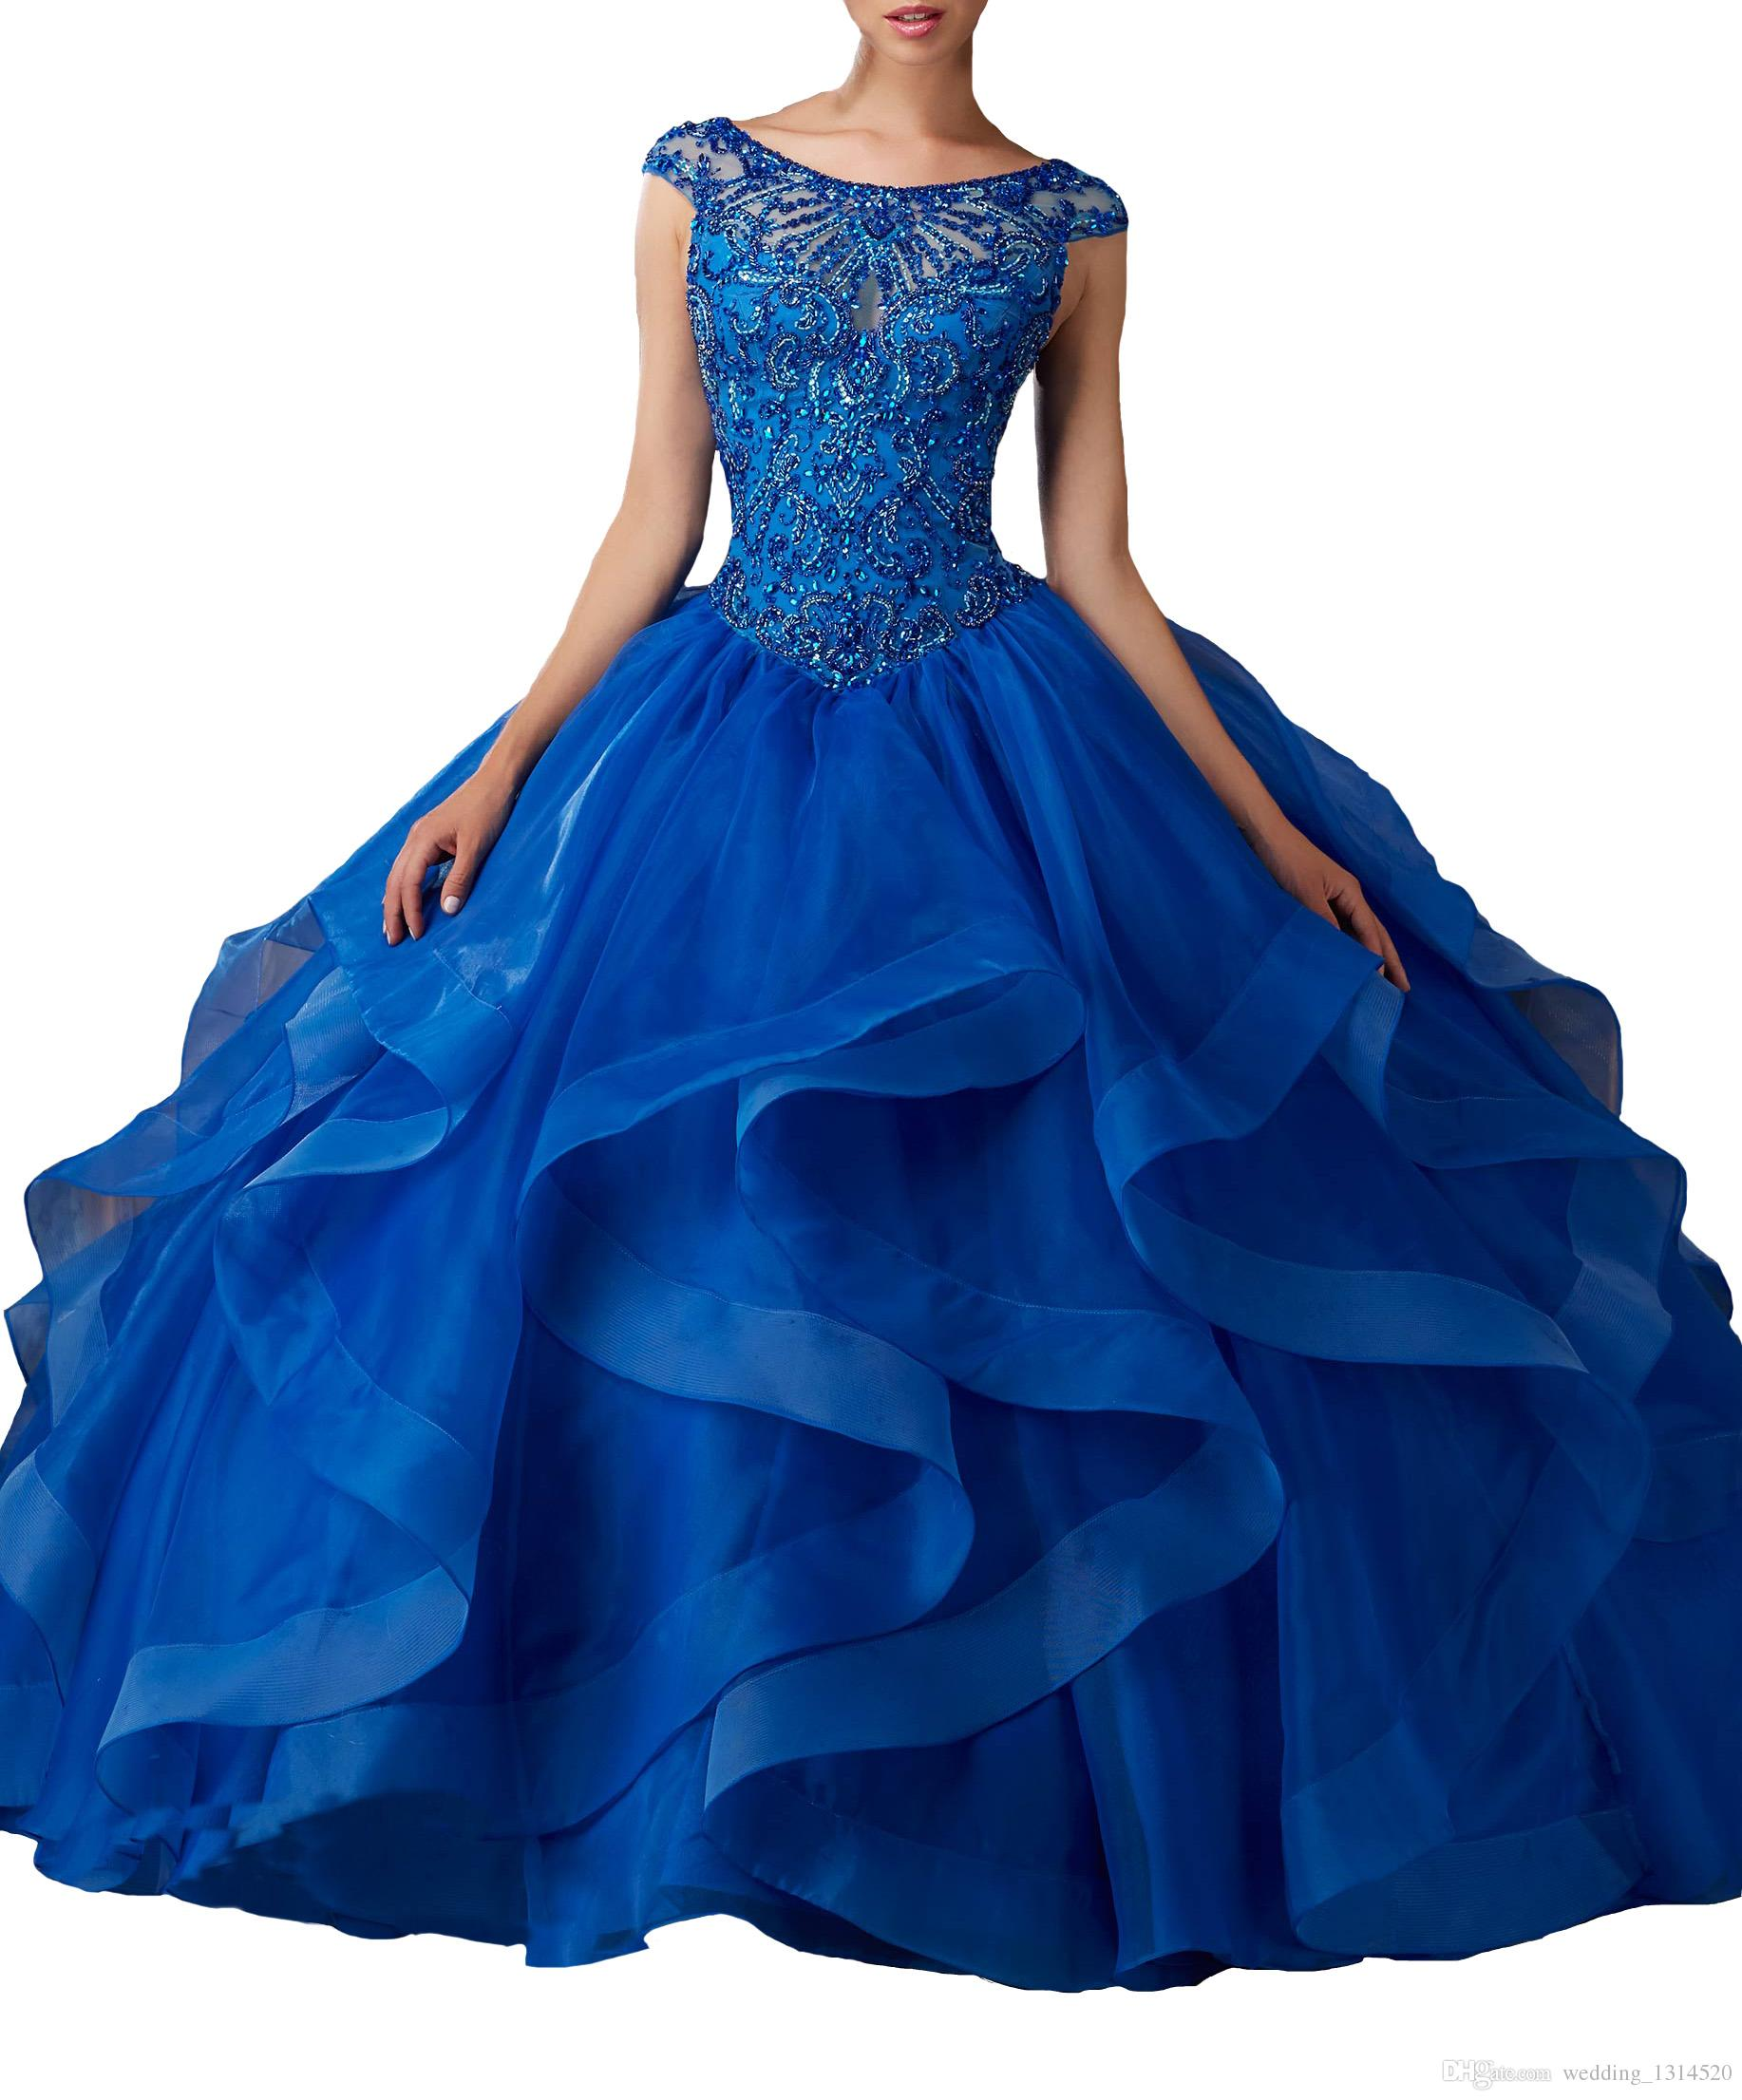 Women Long Quinceanera Dresses Ruffles Boat Neck Crystal Ball Gowns For 15 16 Girls Pageant Dance Party Custom Made Christmas Gifts